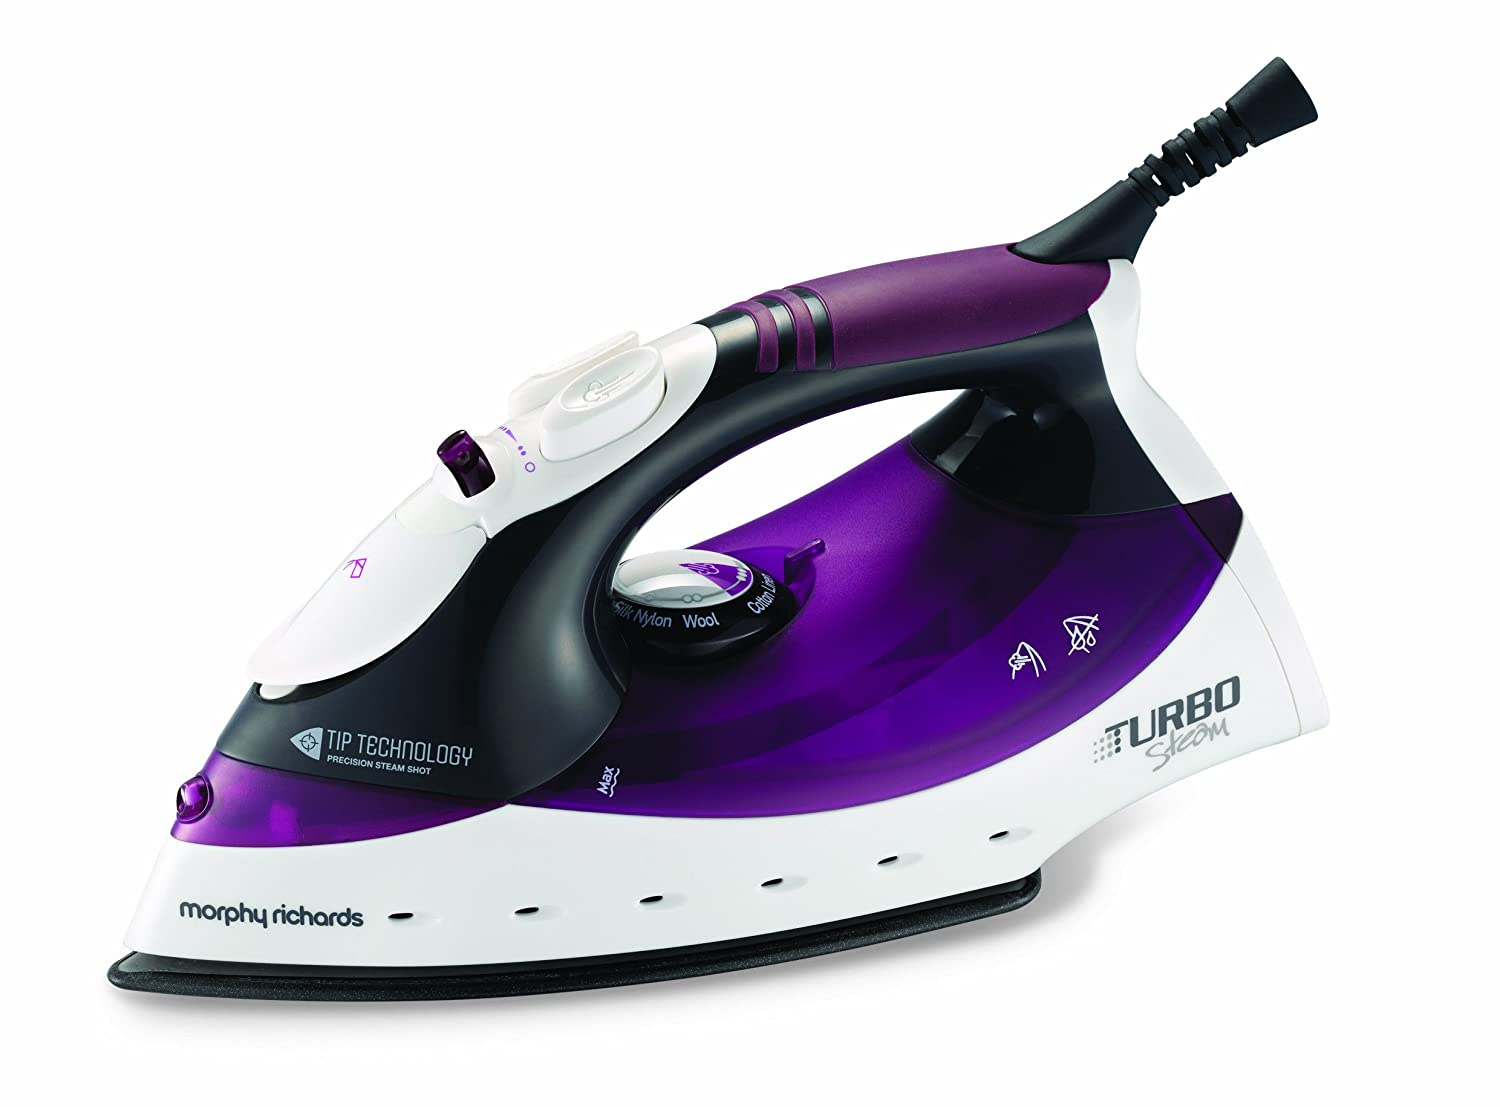 Top 10 Best Steam Irons Reviews 2018 for Home Clothes